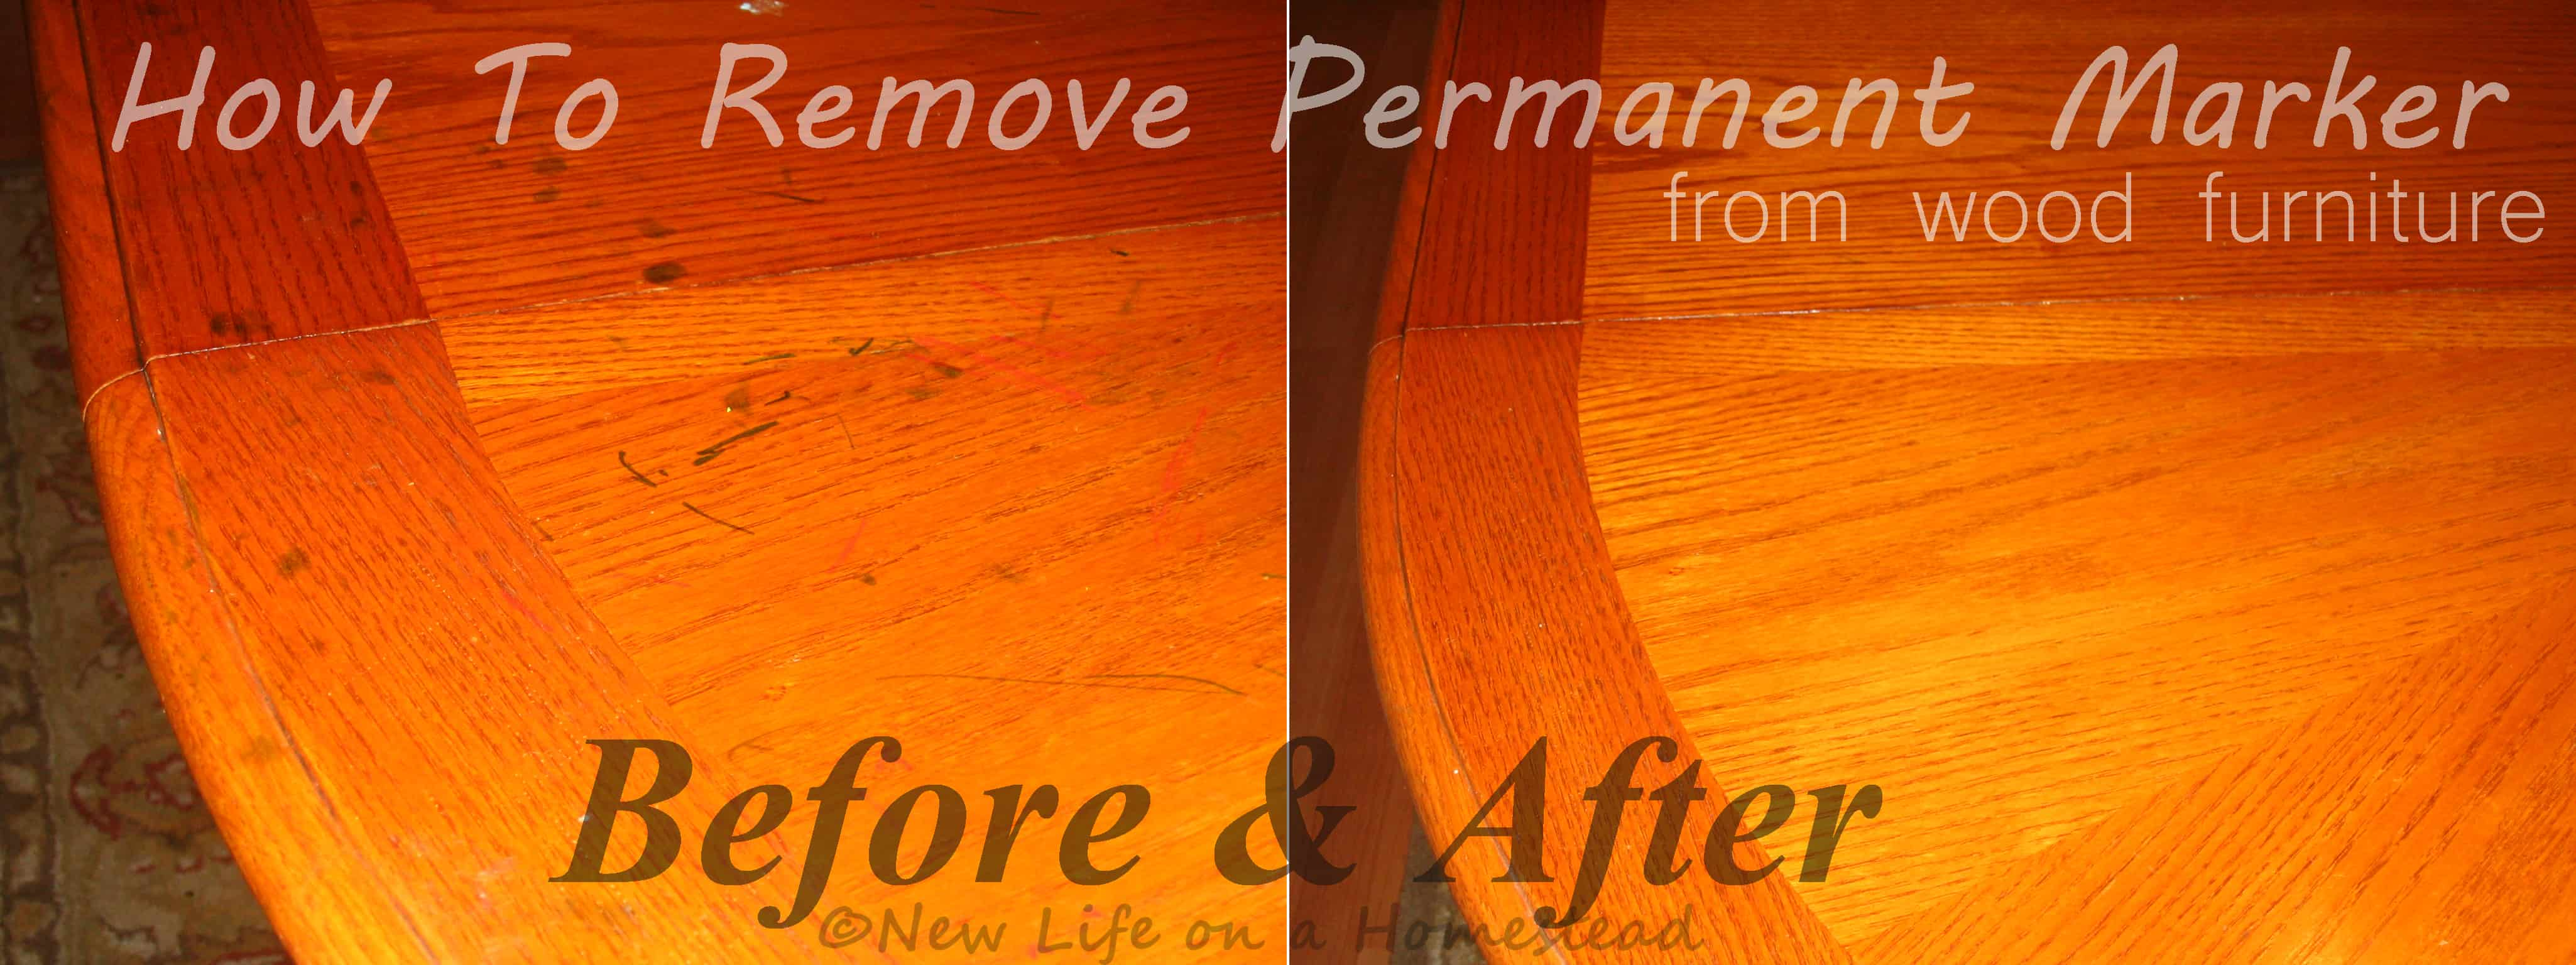 How To Remove Permanent Marker from Wood Furniture https://newlifeonahomestead.com